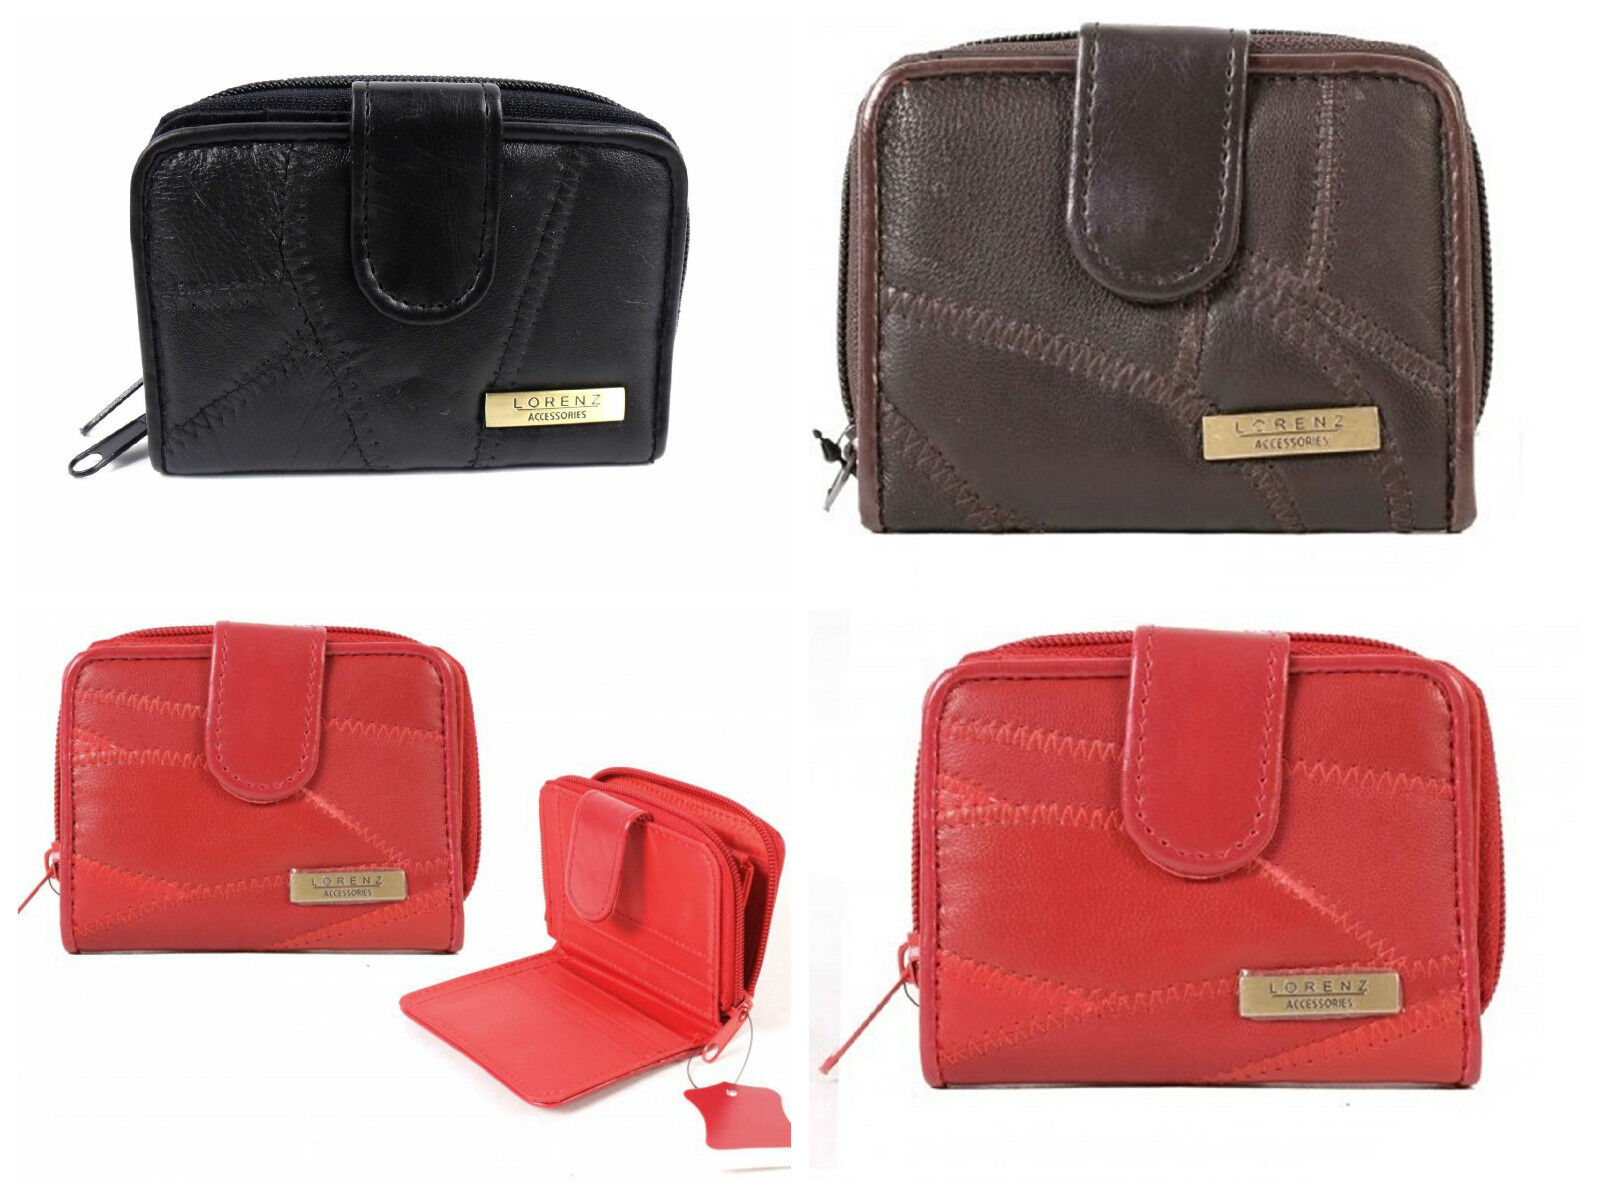 Lorenz Quality Ladies Small Soft Leather Patchwork Purse Wallet Black Brown Red